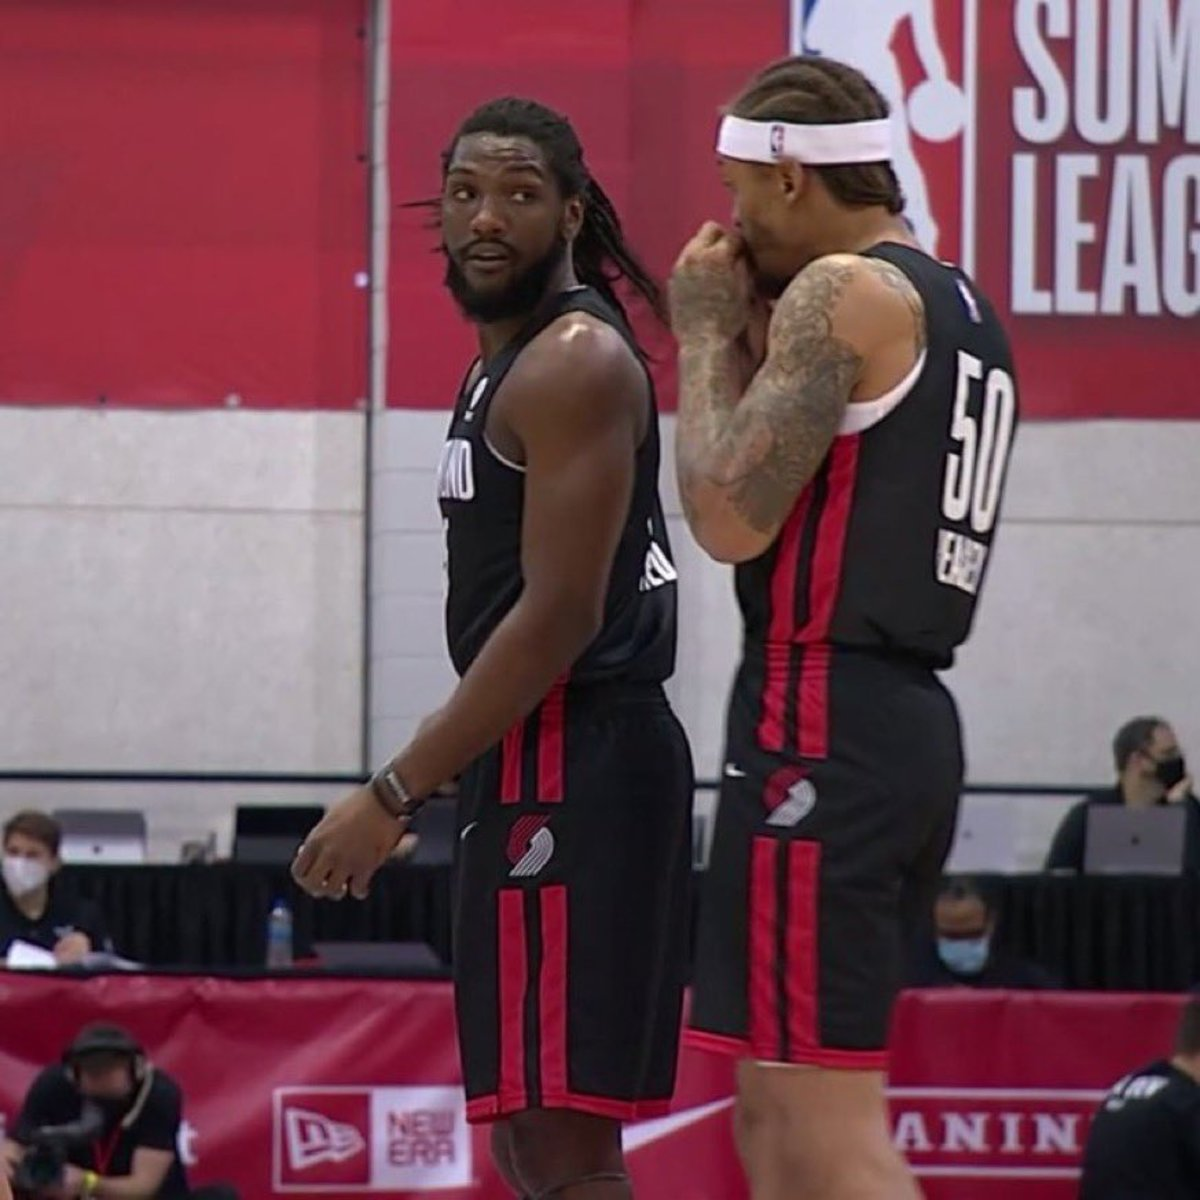 Kenneth Faried And Michael Beasley Are Playing For The Portland Trail Blazers In The NBA Summer League